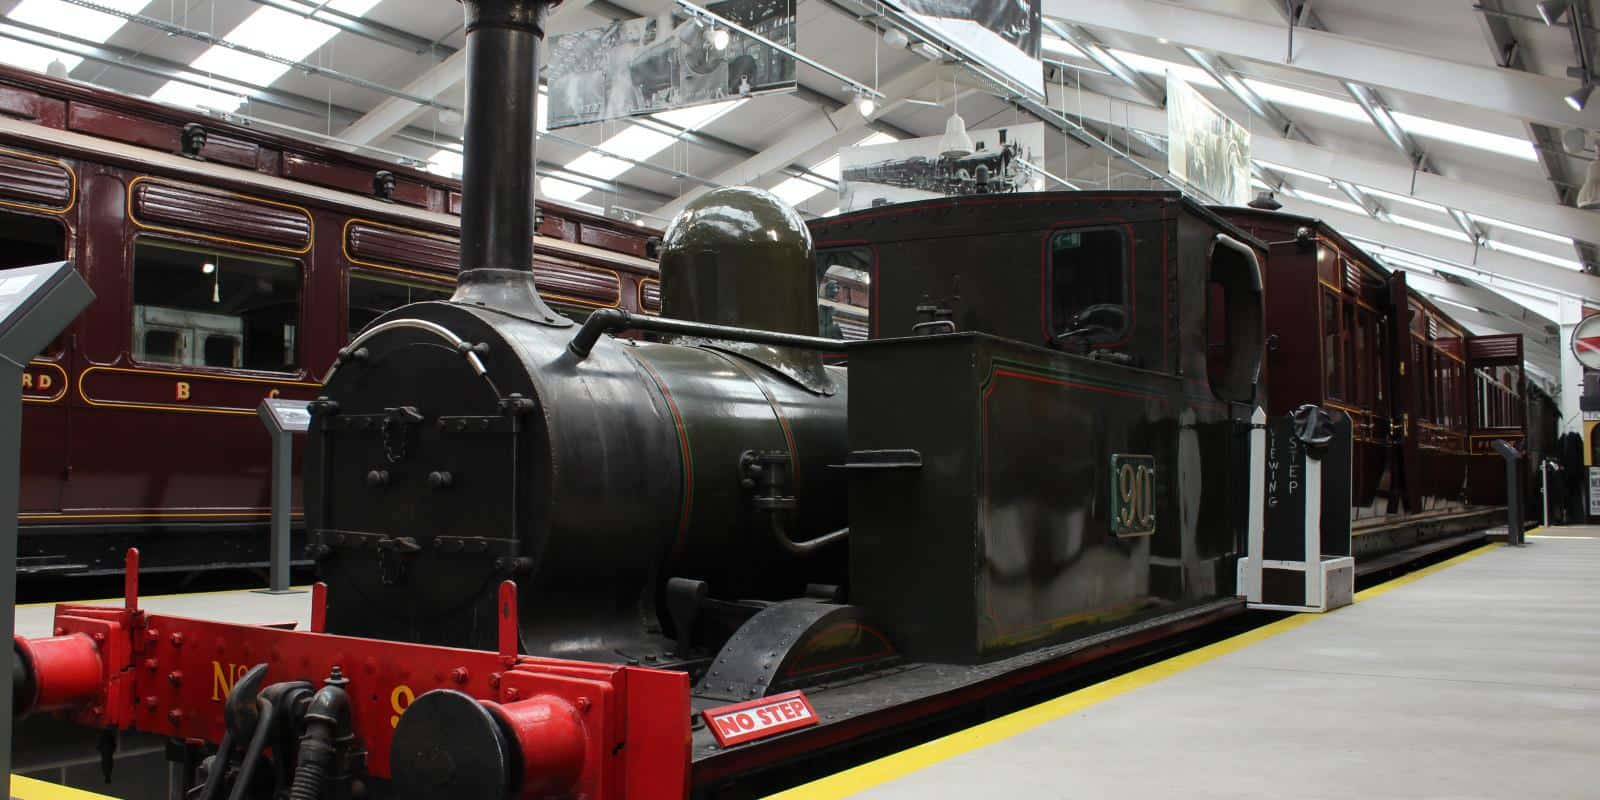 GS&WR steam locomotive No. 90 on display in the gallery building